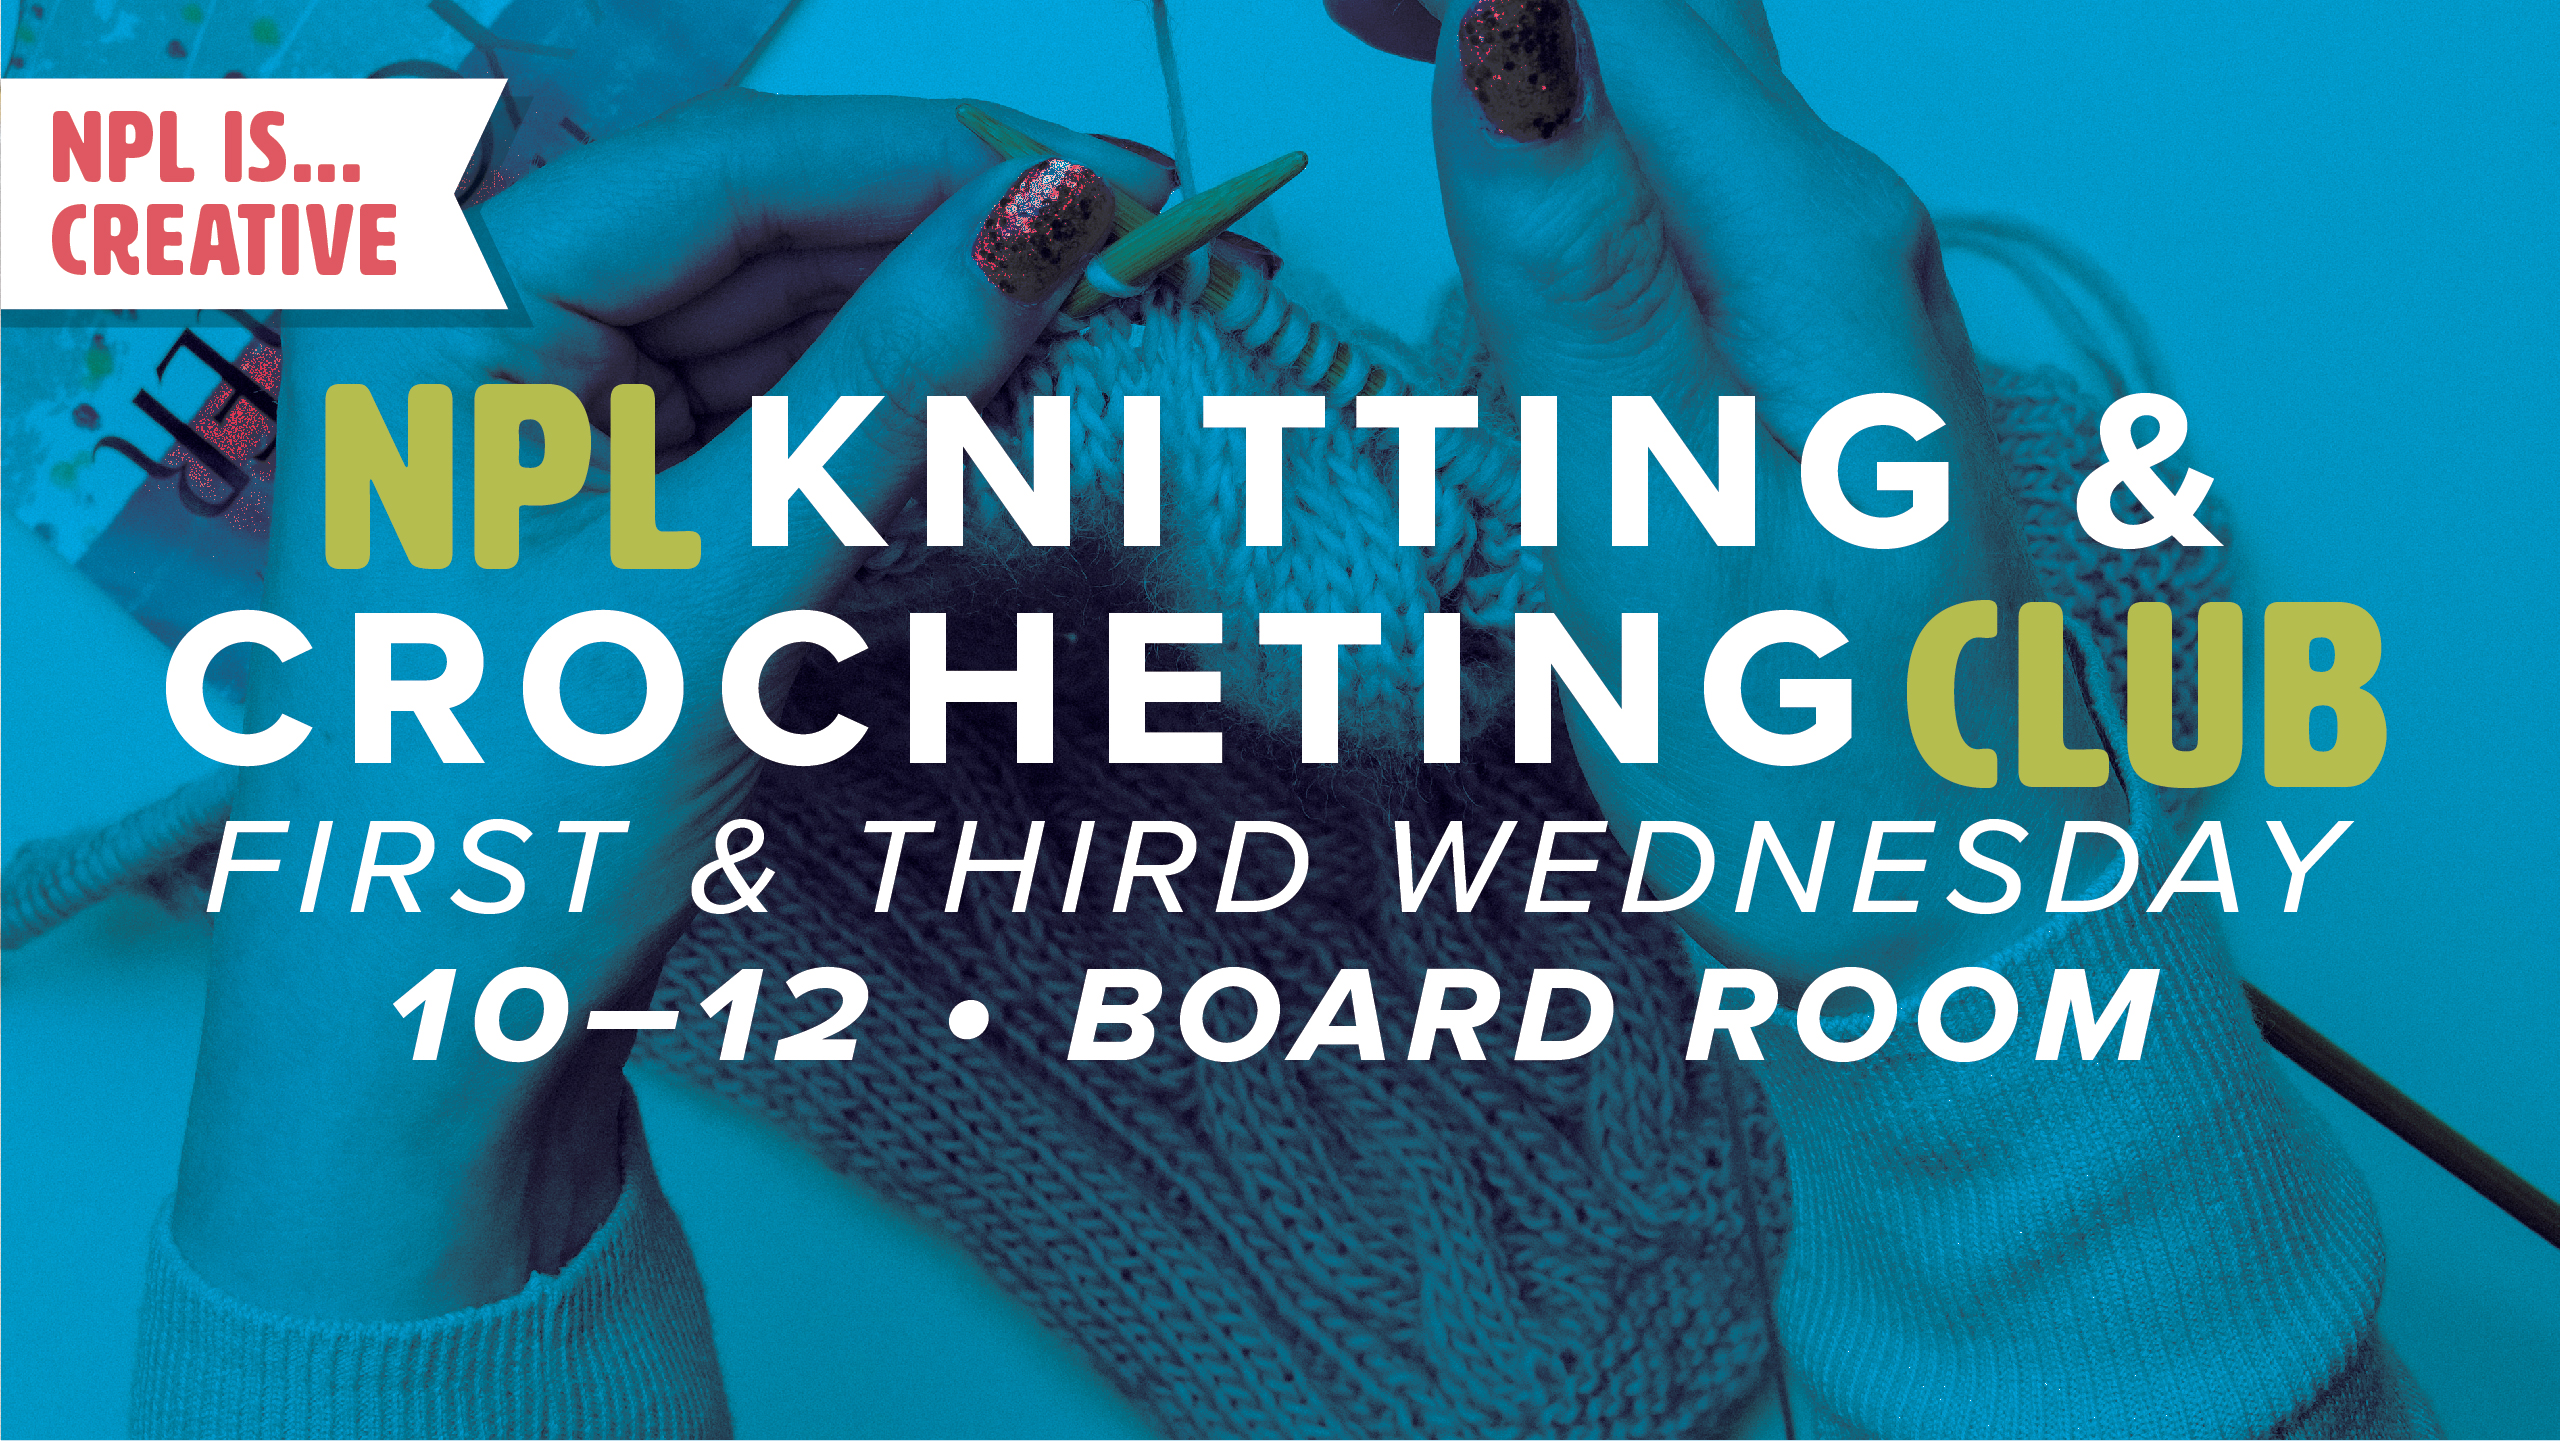 NPL Knitting & Crocheting Club